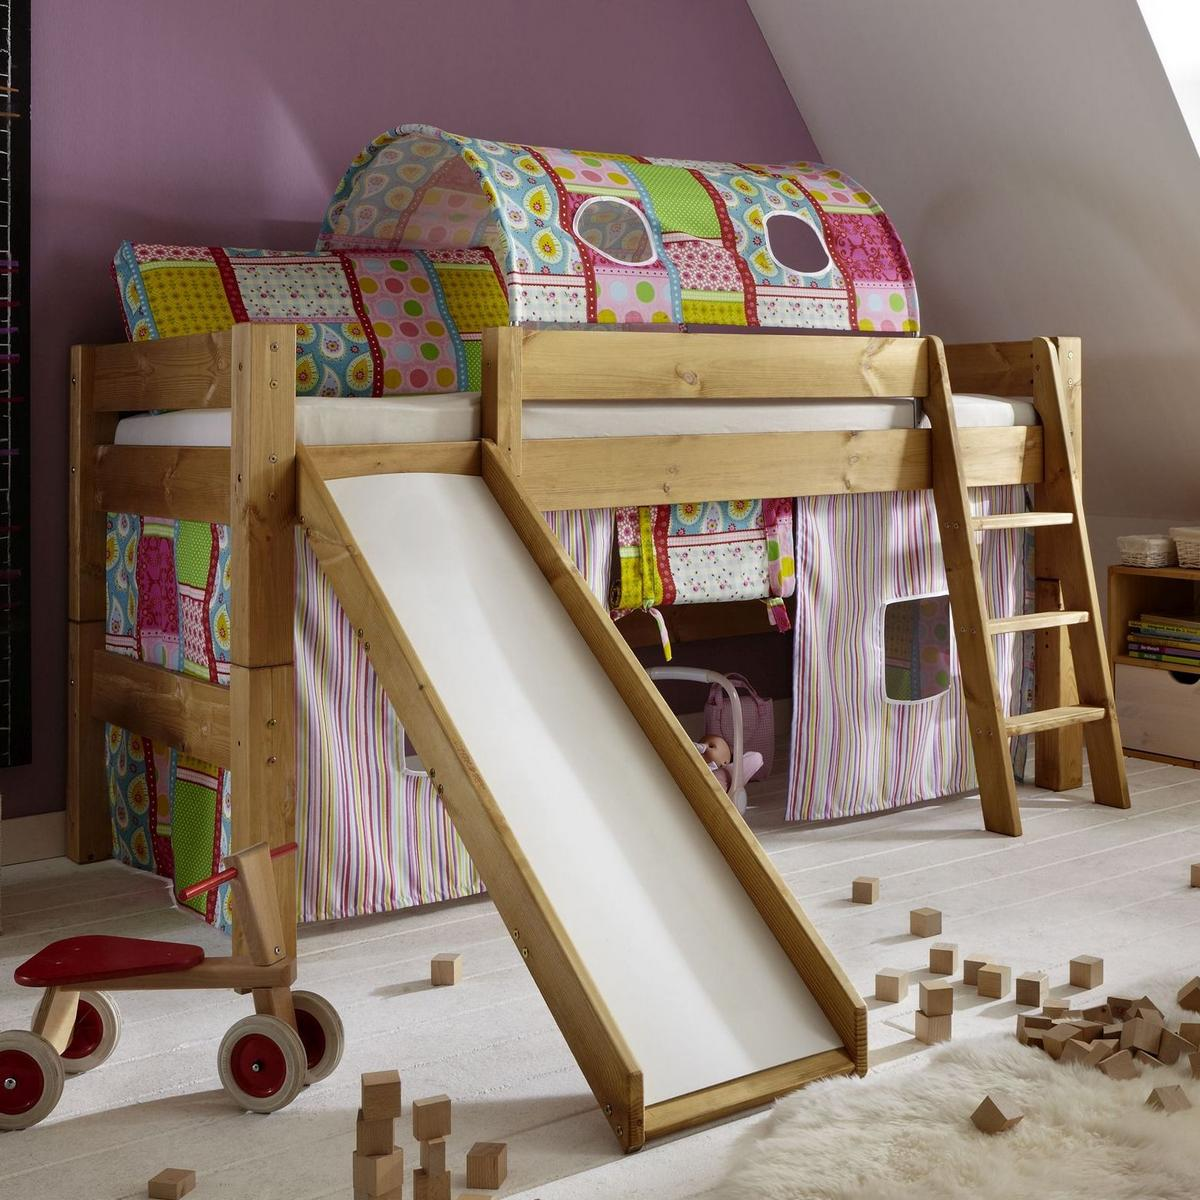 spielbett hochbett mit rutsche tobykids kiefer massiv gelaugt ge lt natur lackiert butterfly. Black Bedroom Furniture Sets. Home Design Ideas